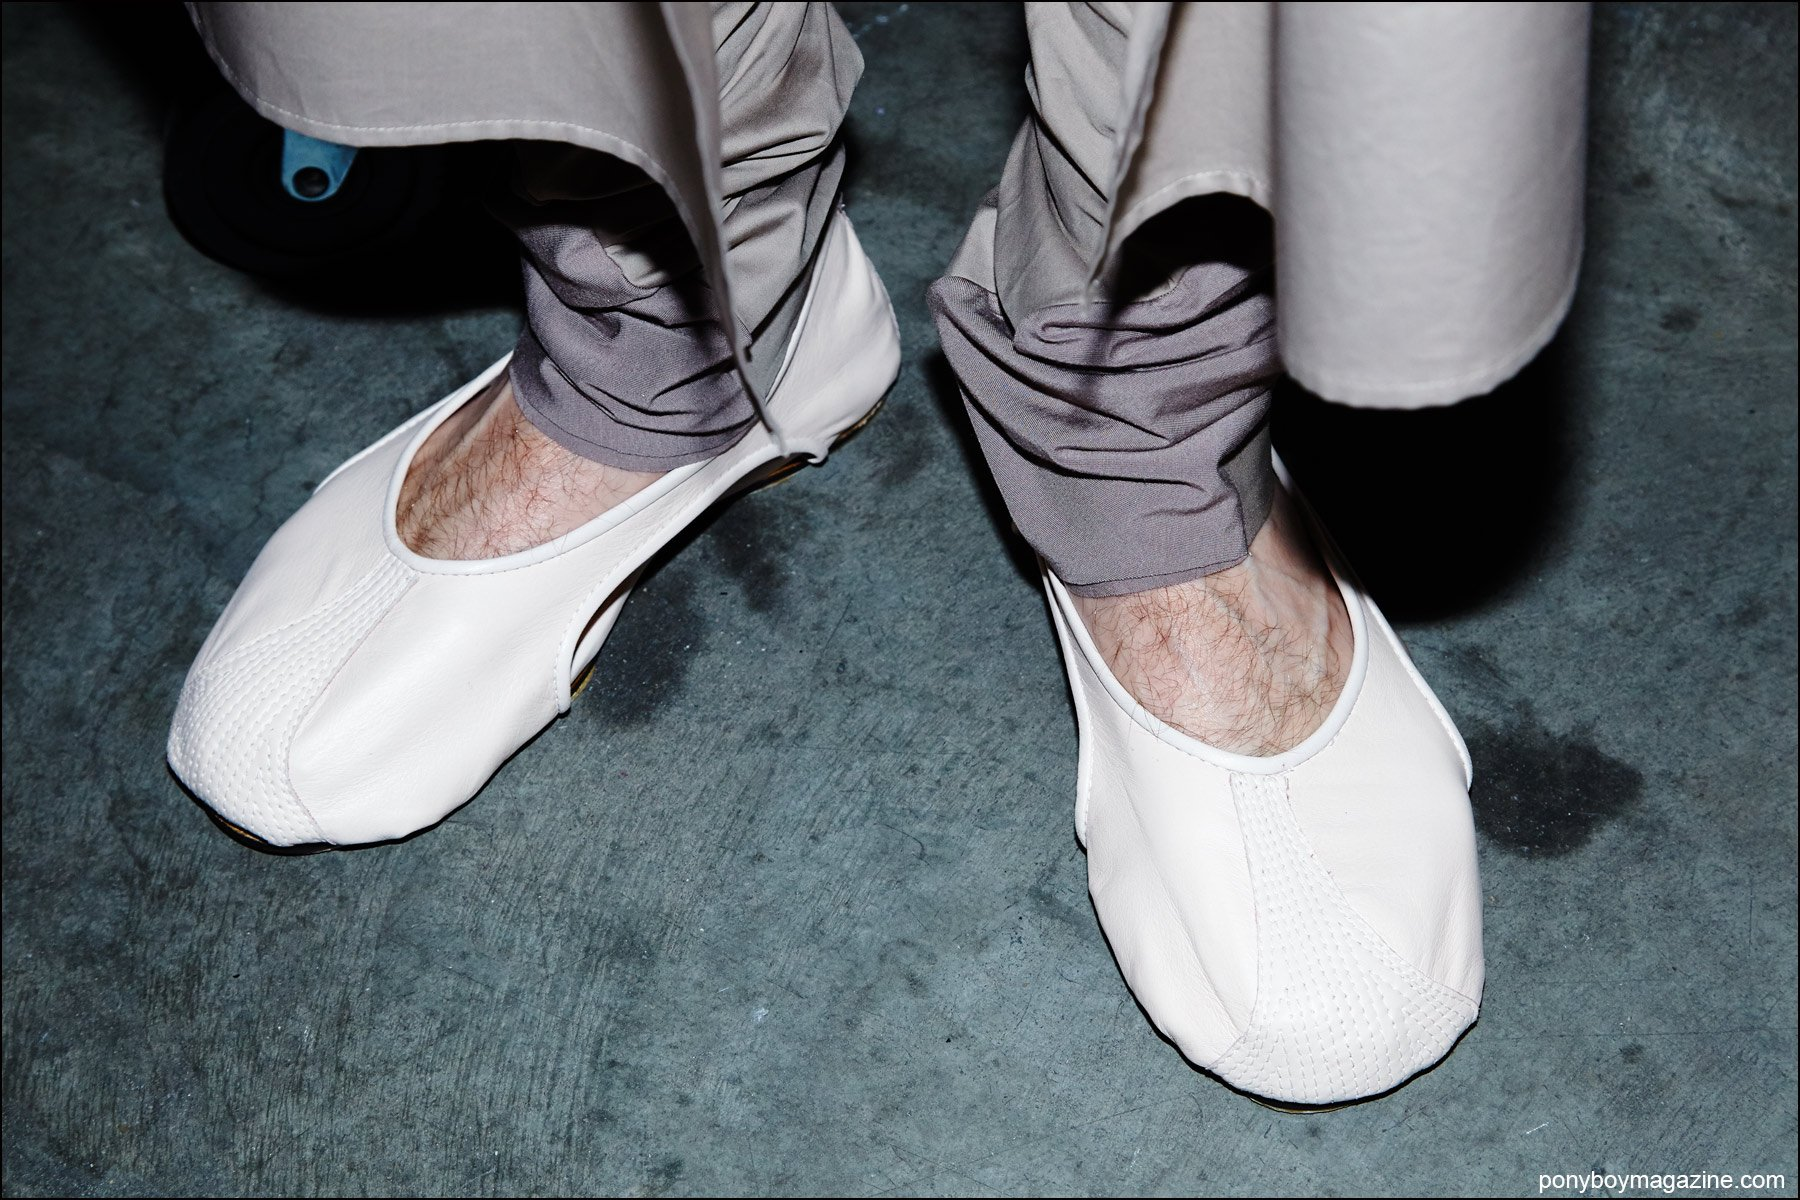 Detail shot of models shoes, backstage at the threeASFOUR Spring/Summer 2016 fashion show. Photography by Alexander Thompson for Ponyboy magazine NY.